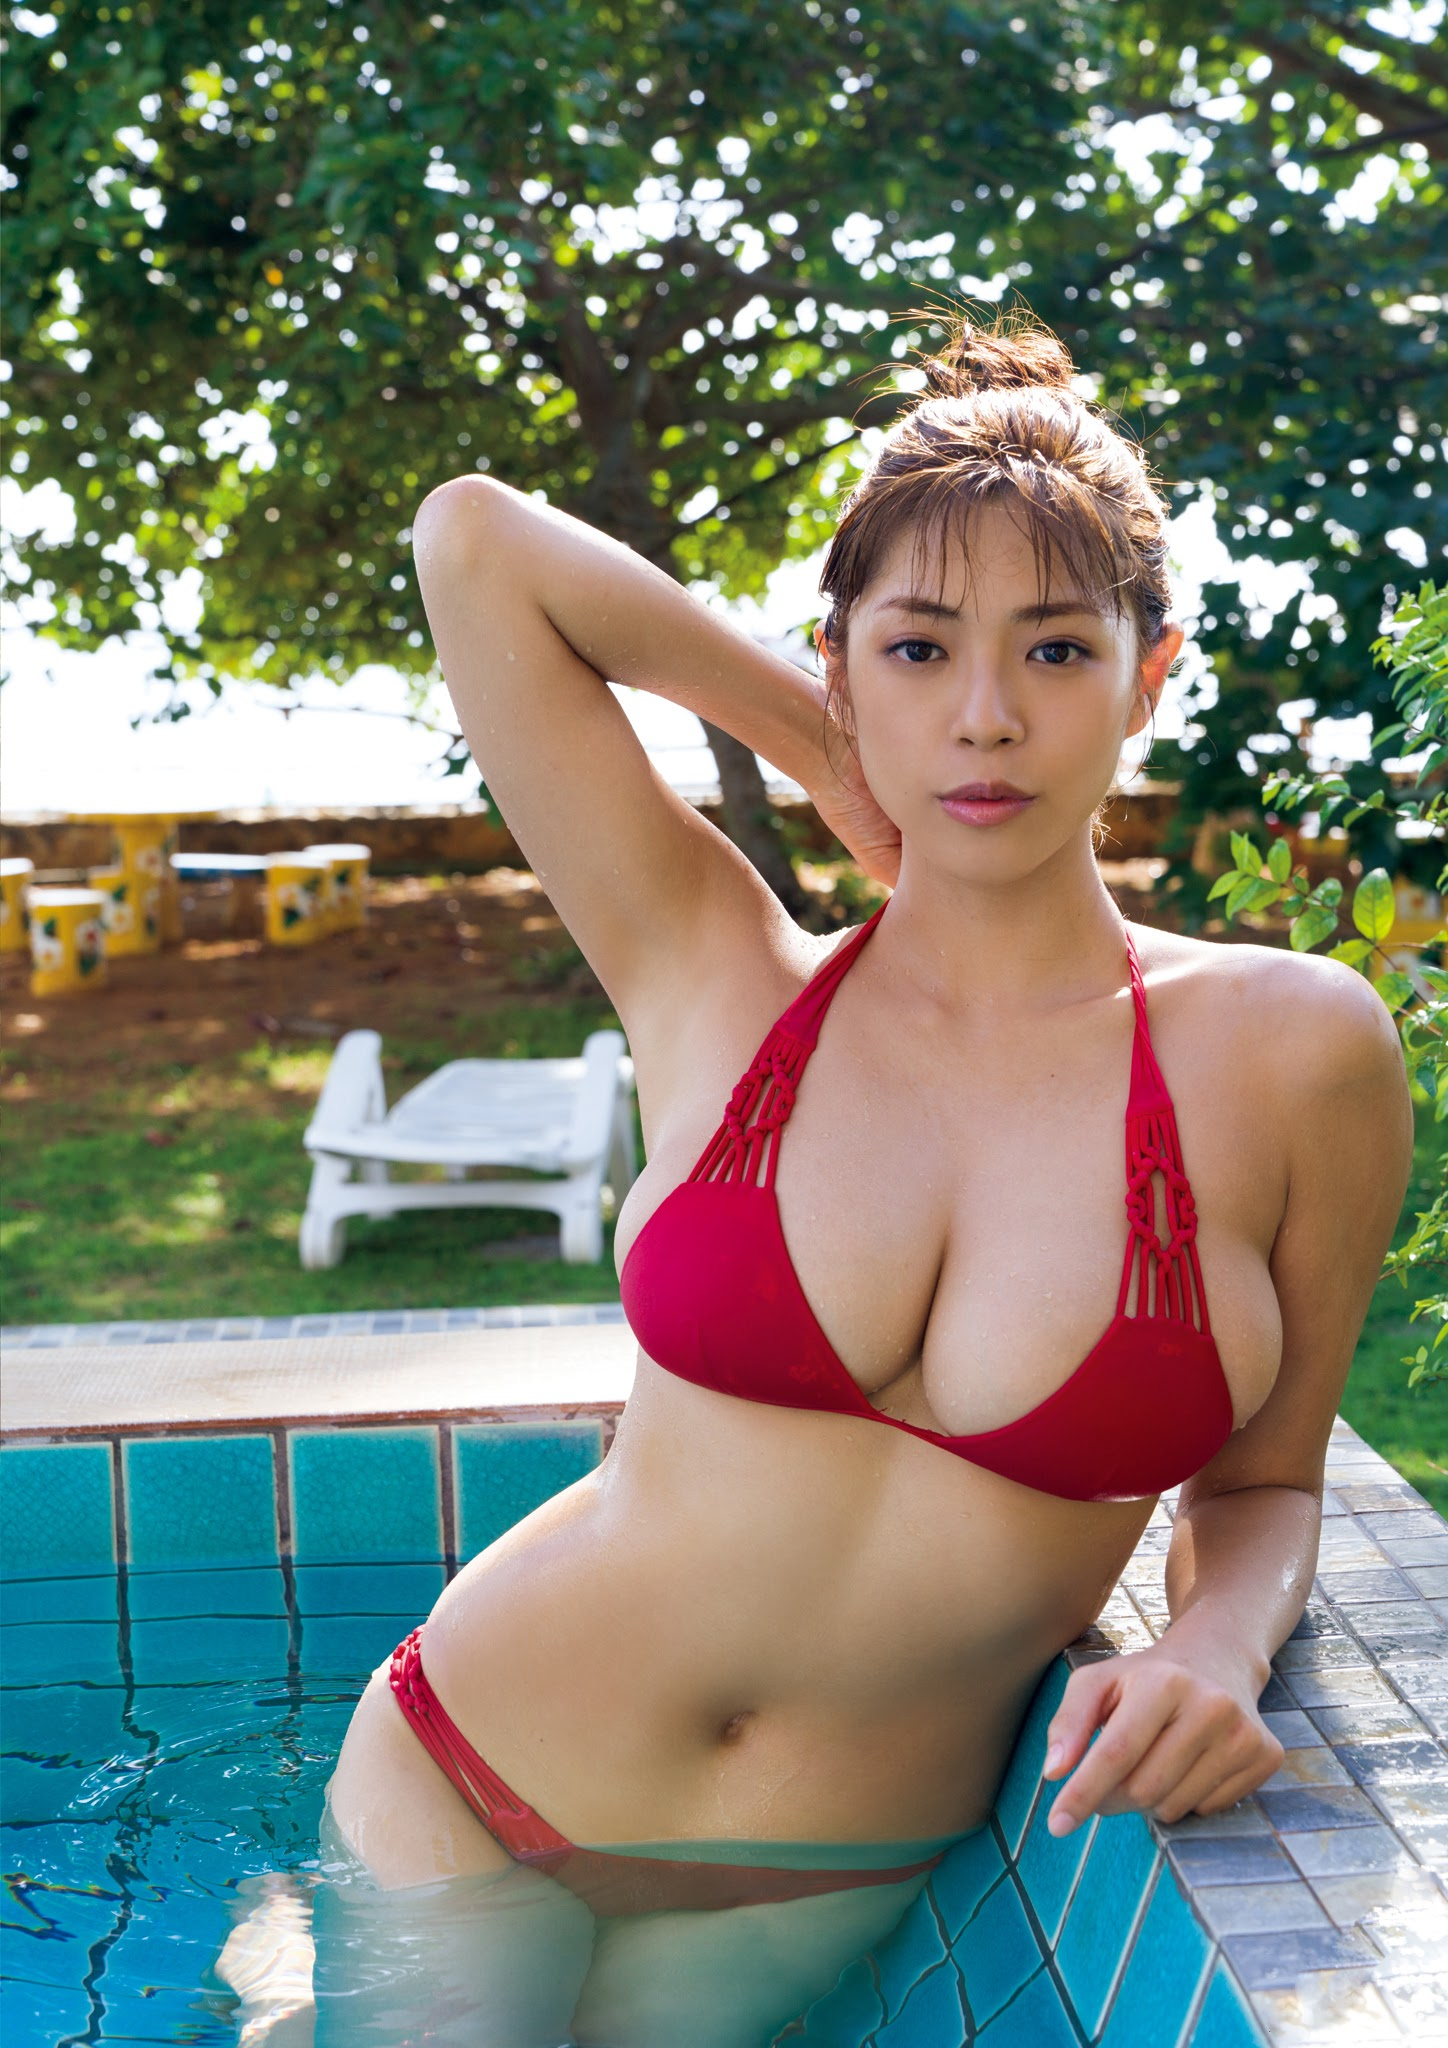 Super body of H cup Minami Wachi 2020 that exposes body and mind in tropical Thailand082